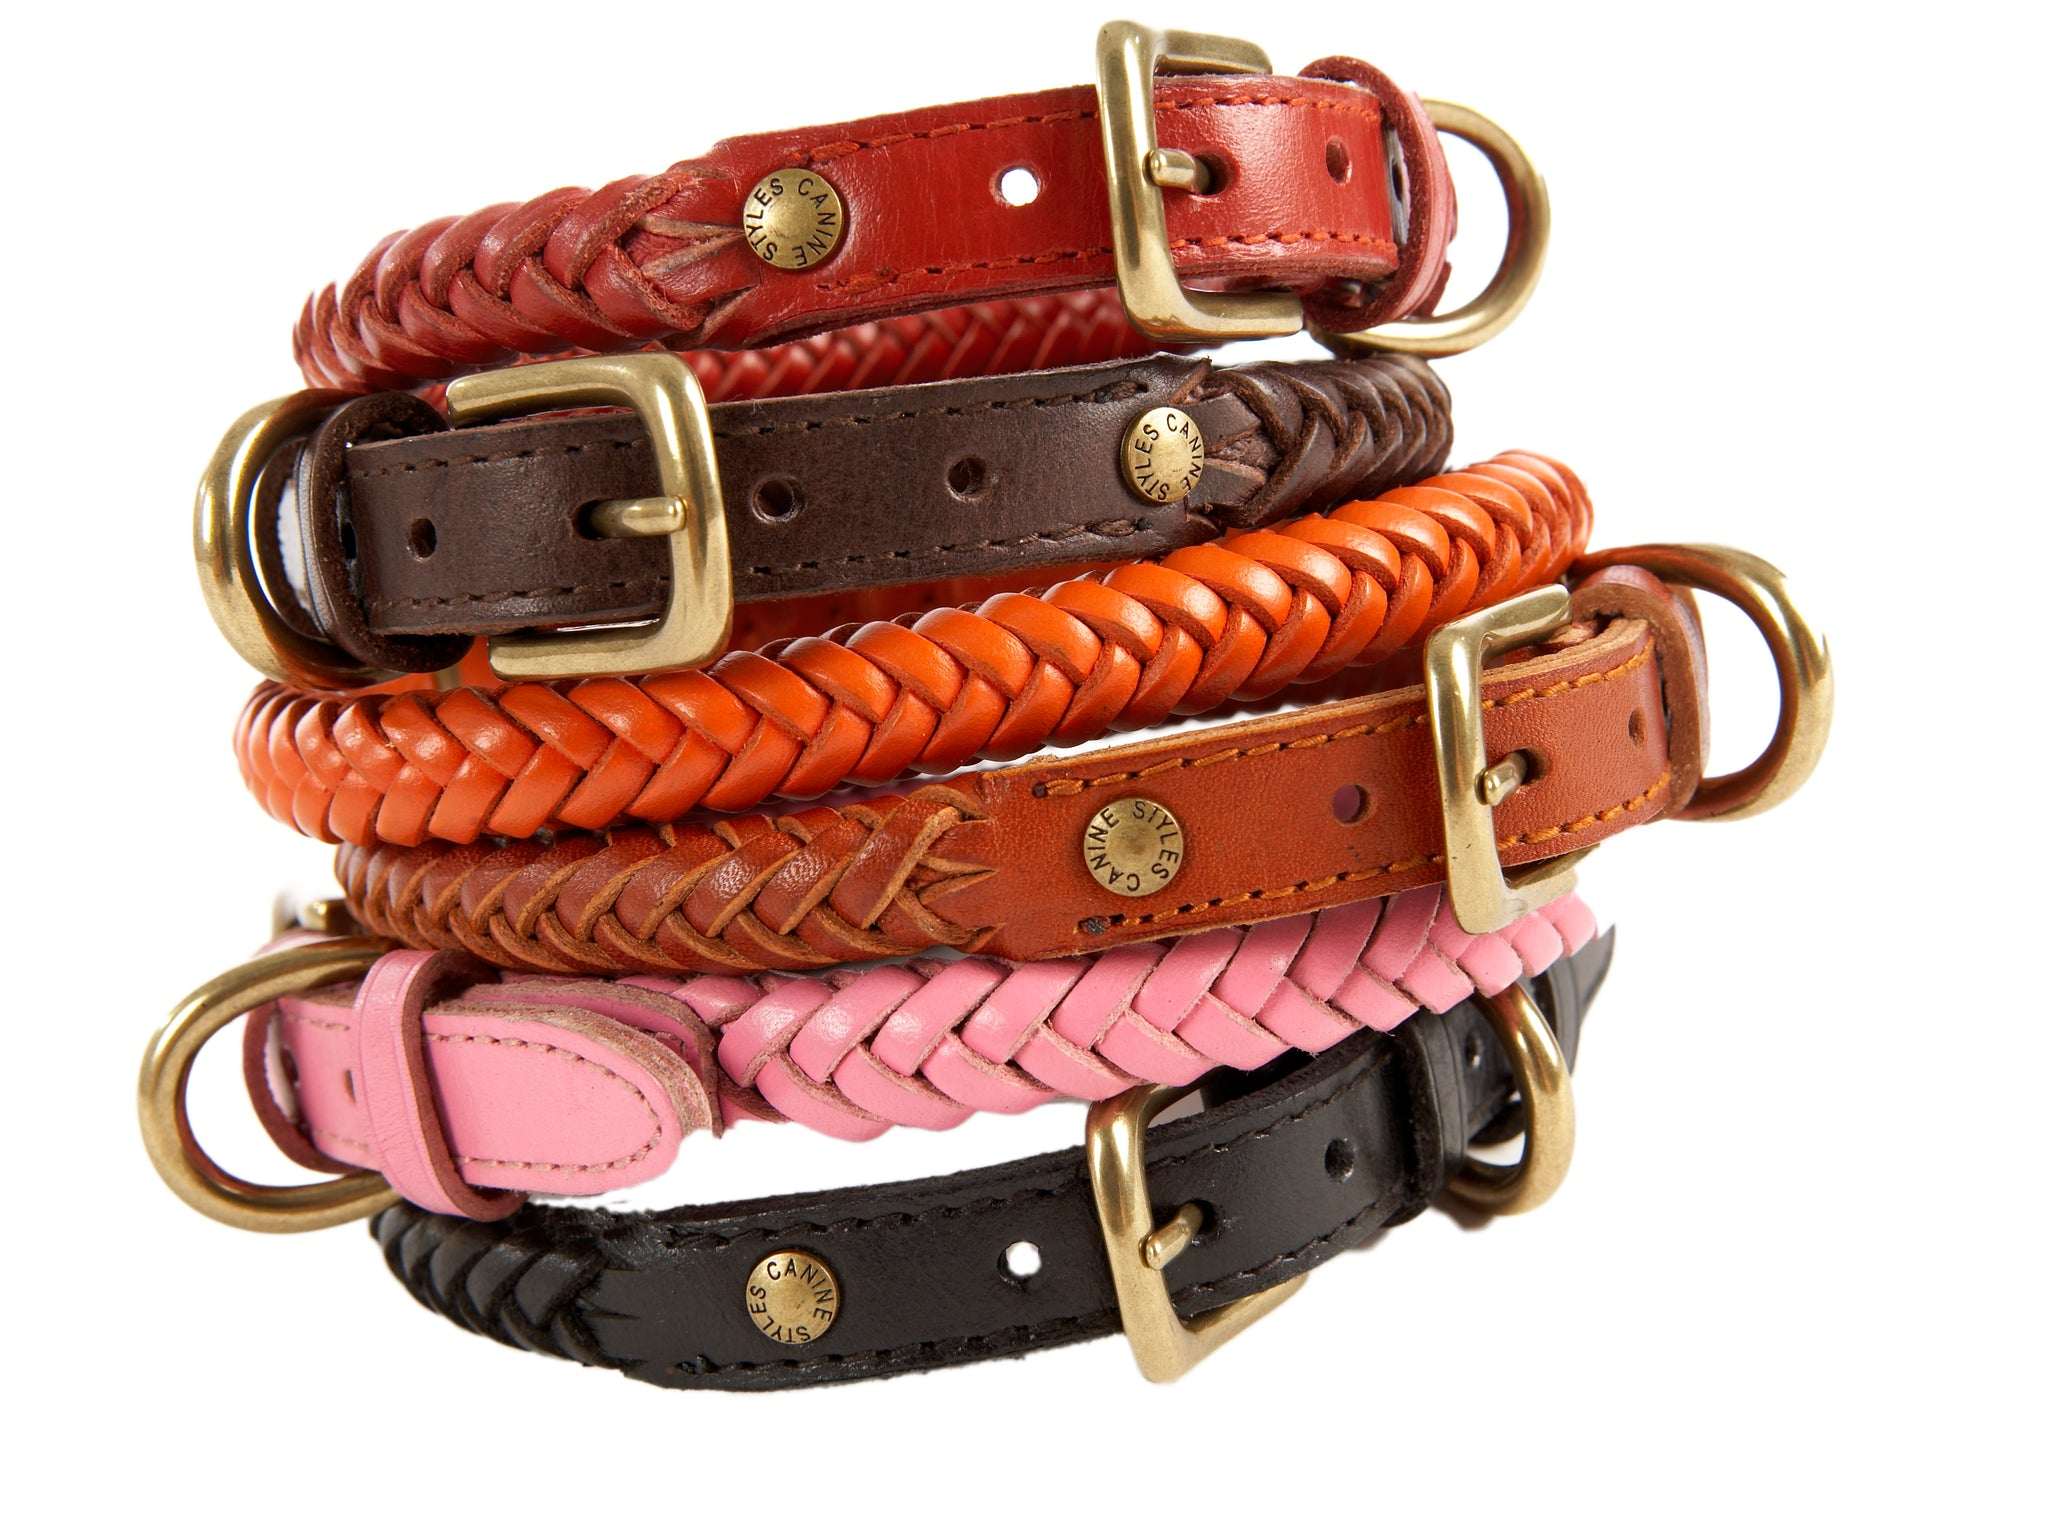 Braided Leather - Dog Collar - Harnesses - Dog Lead | 6 Color Options